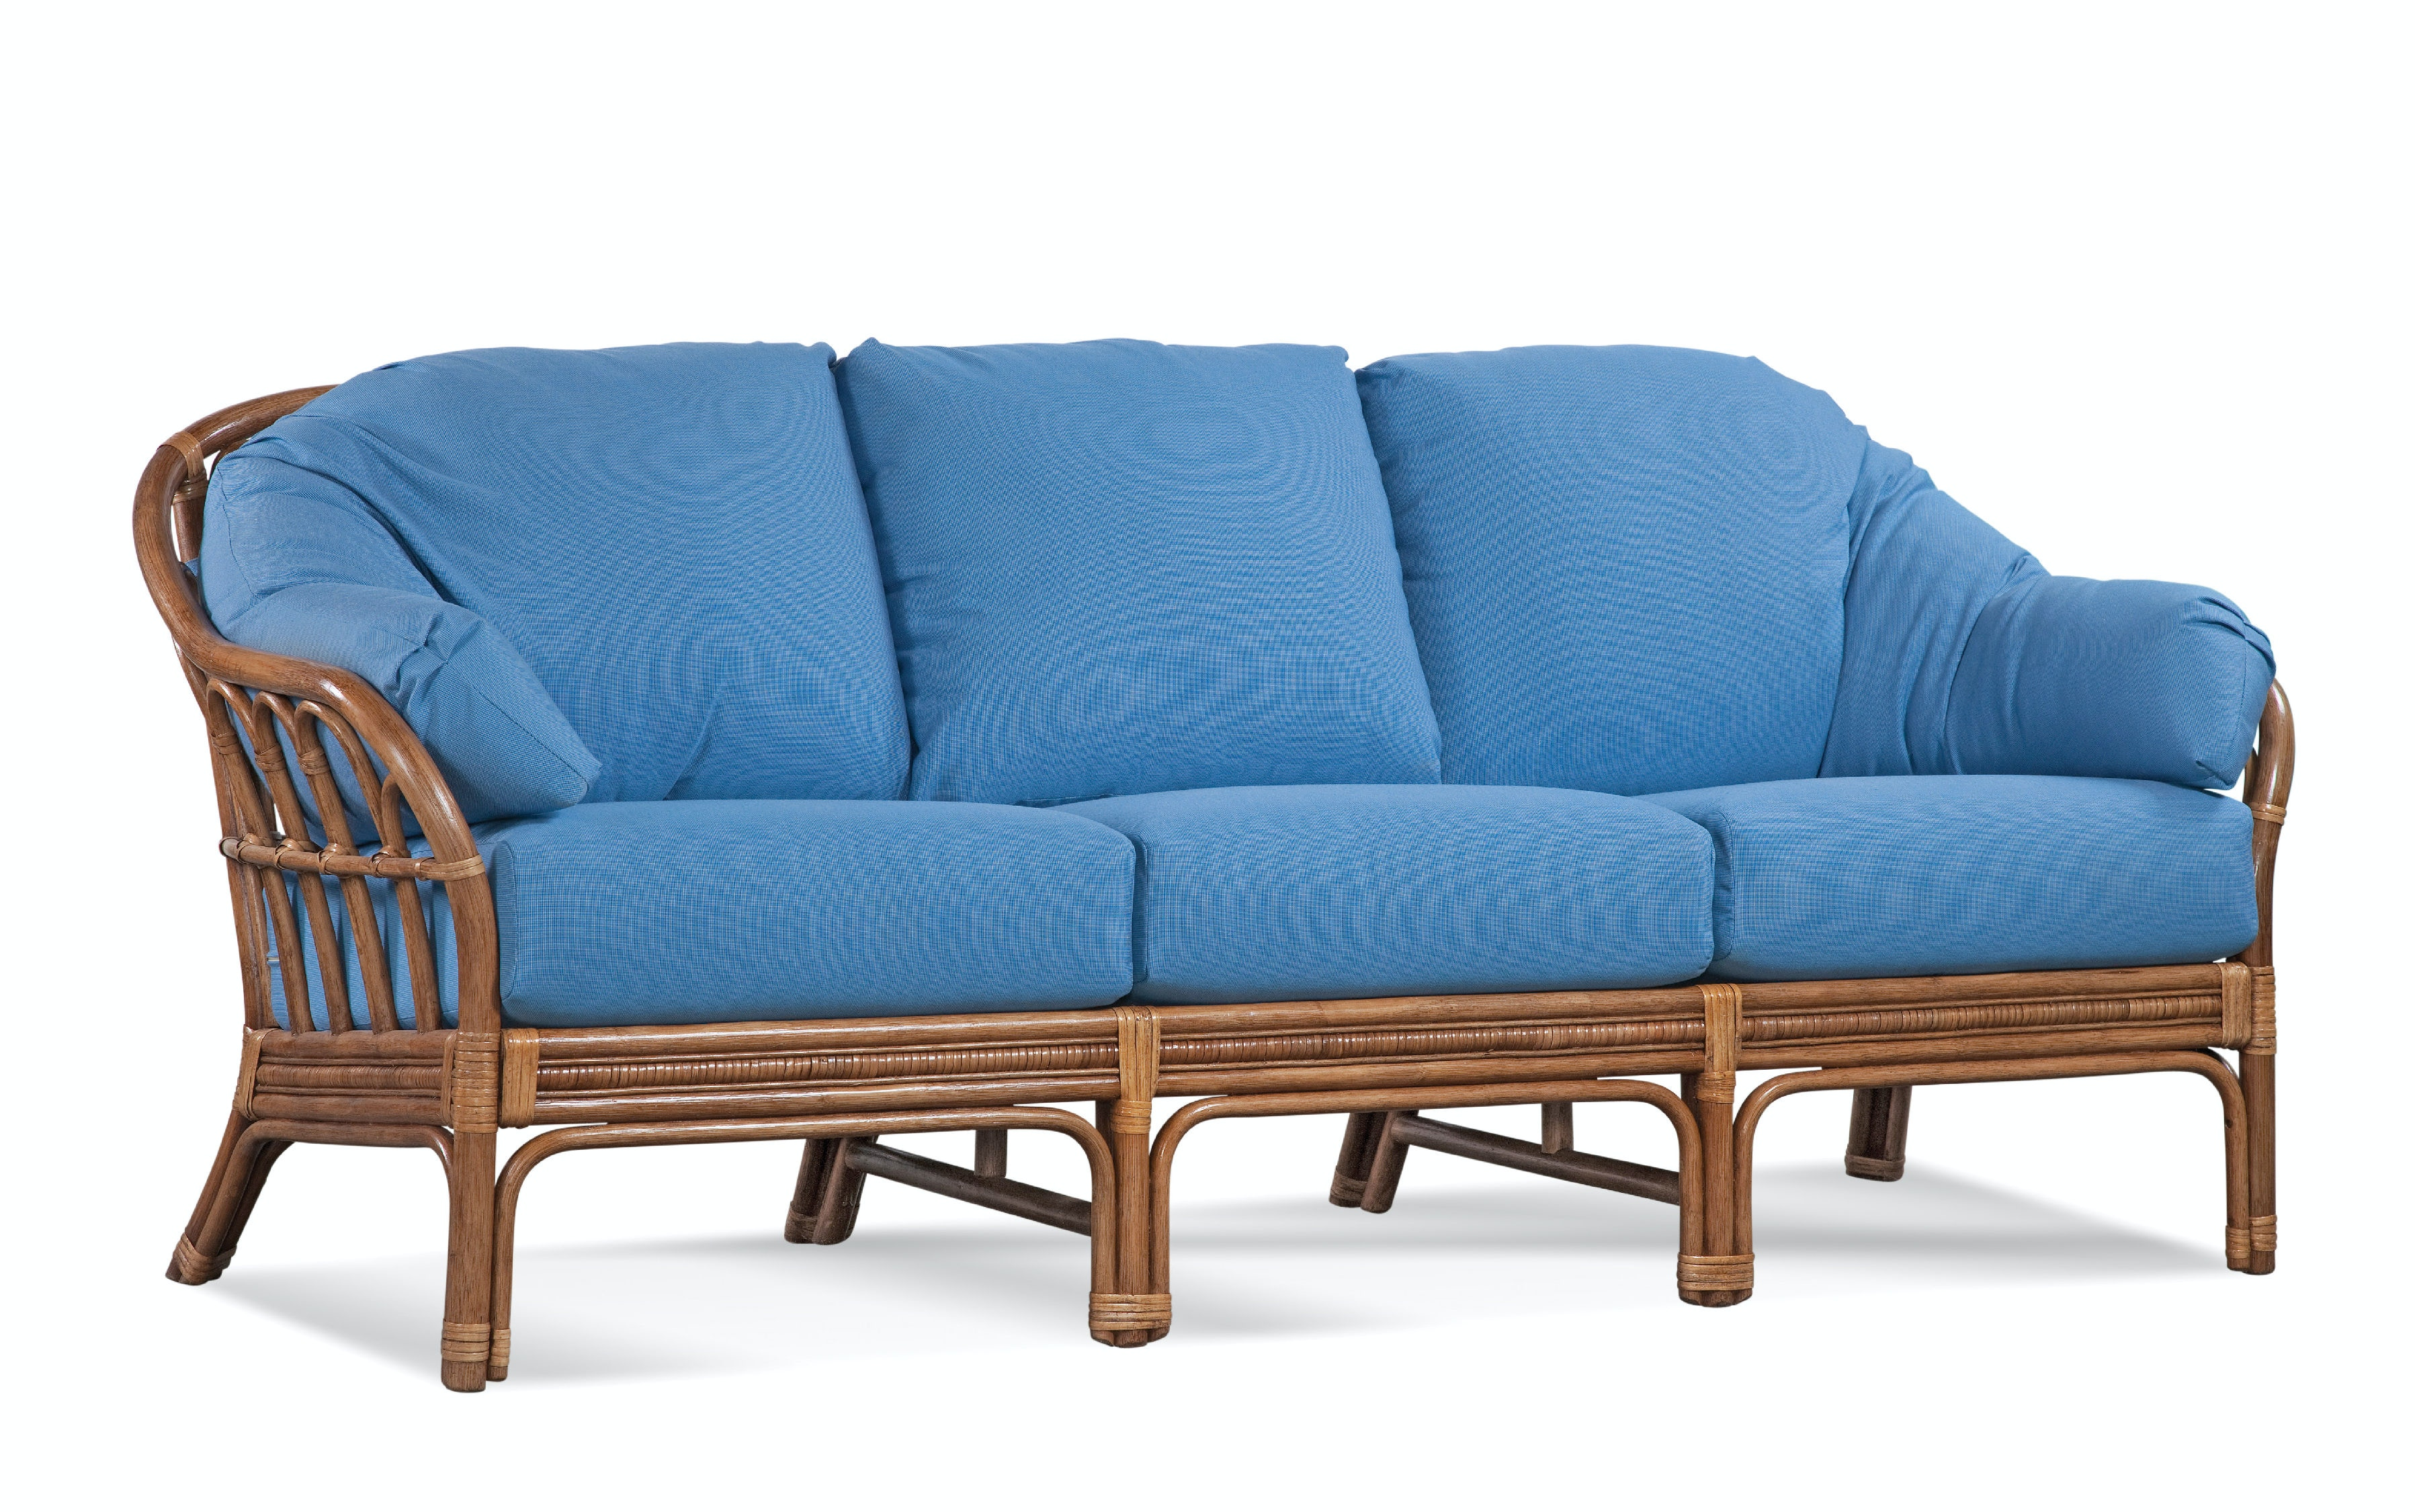 Braxton Culler Outdoor Patio Sofa 201 011 Rider